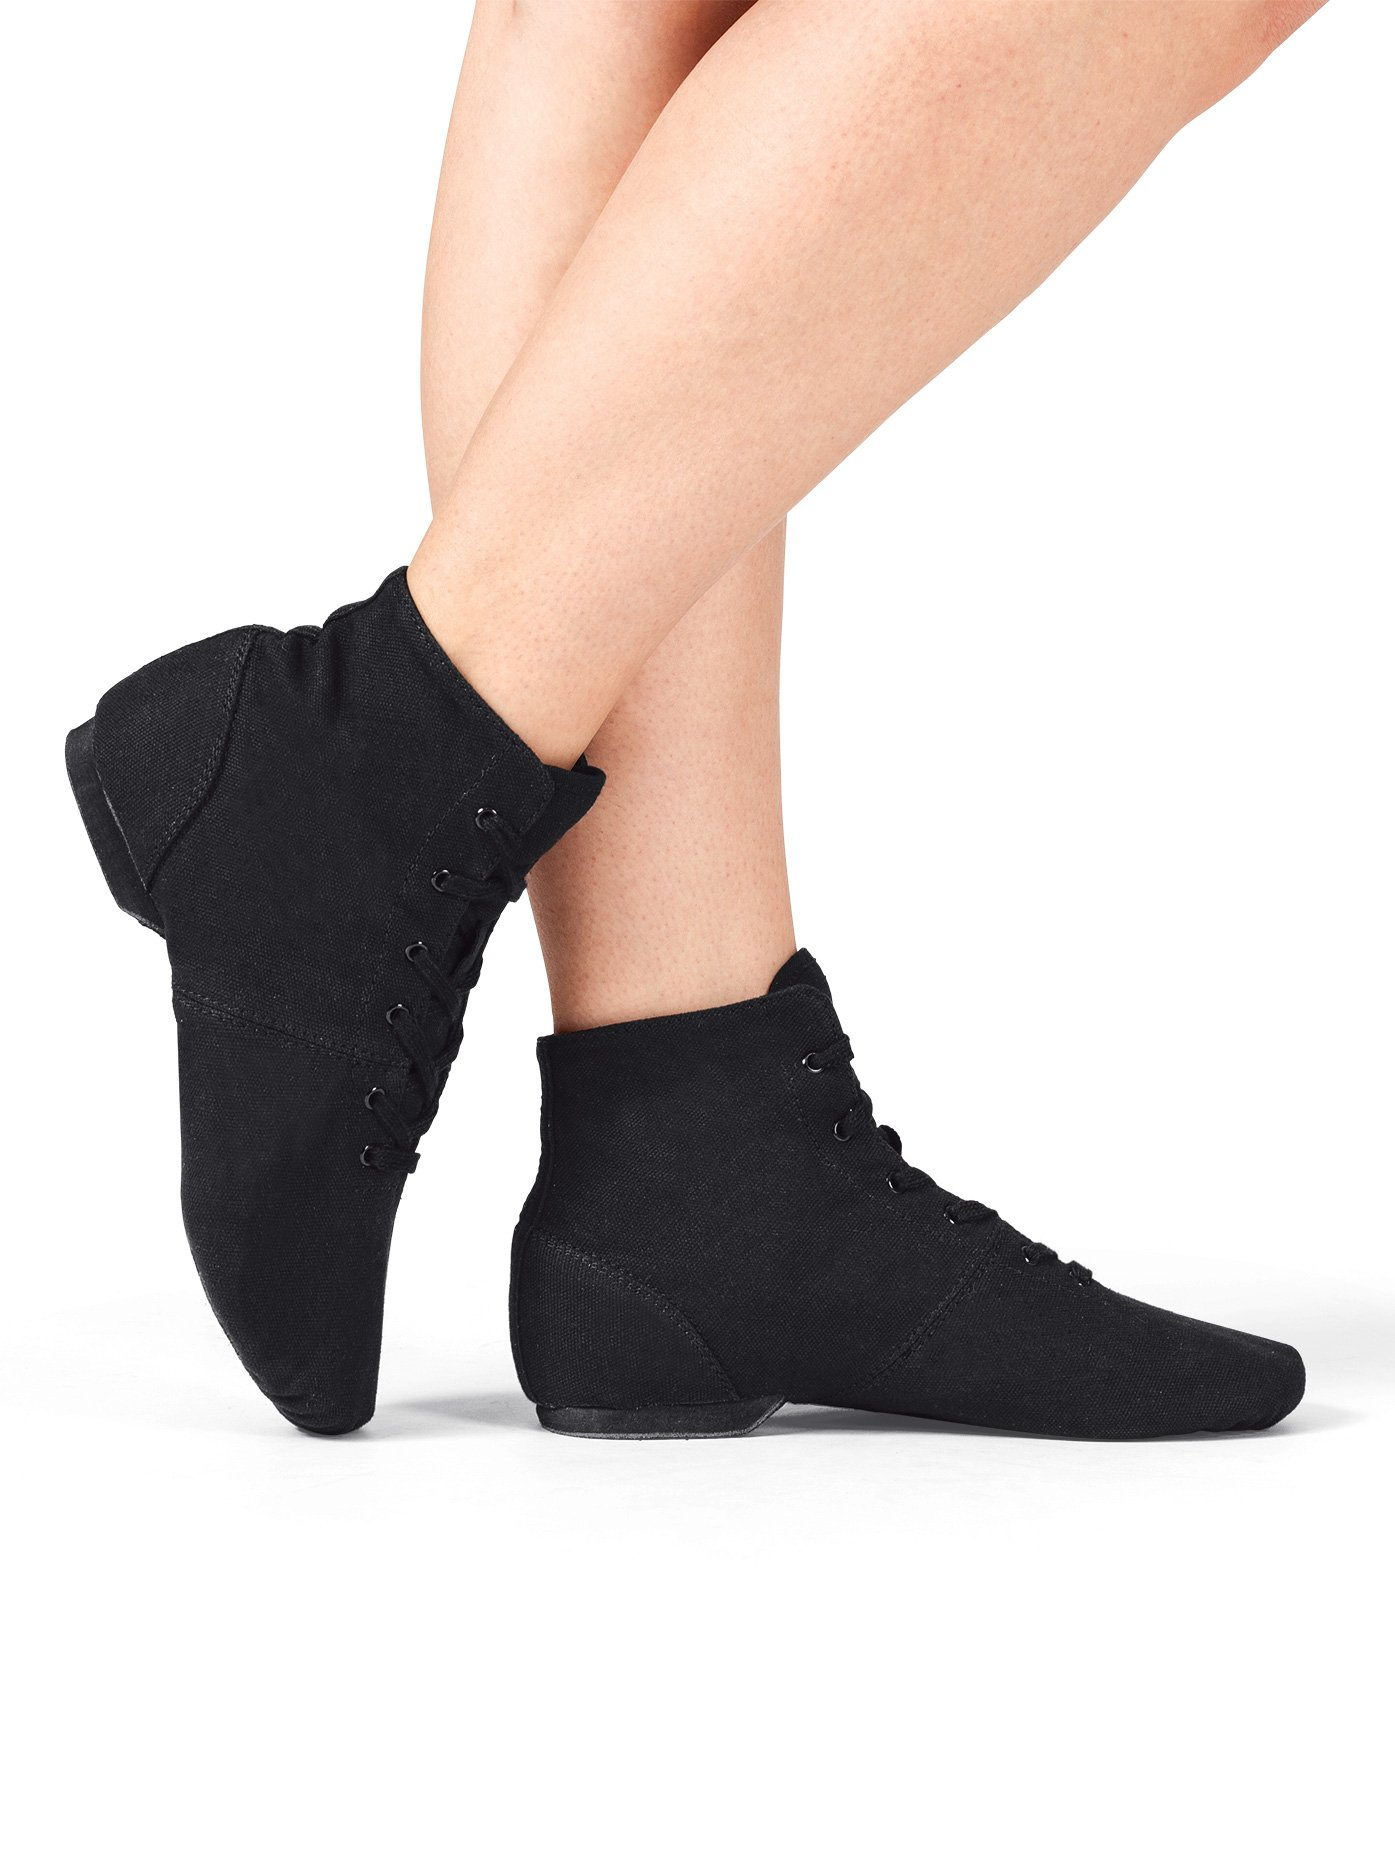 Adult ''Broadway Jazz'' Over-the-Ankle Canvas Jazz Boot,T7502BLK09.0M,Black,09.0M